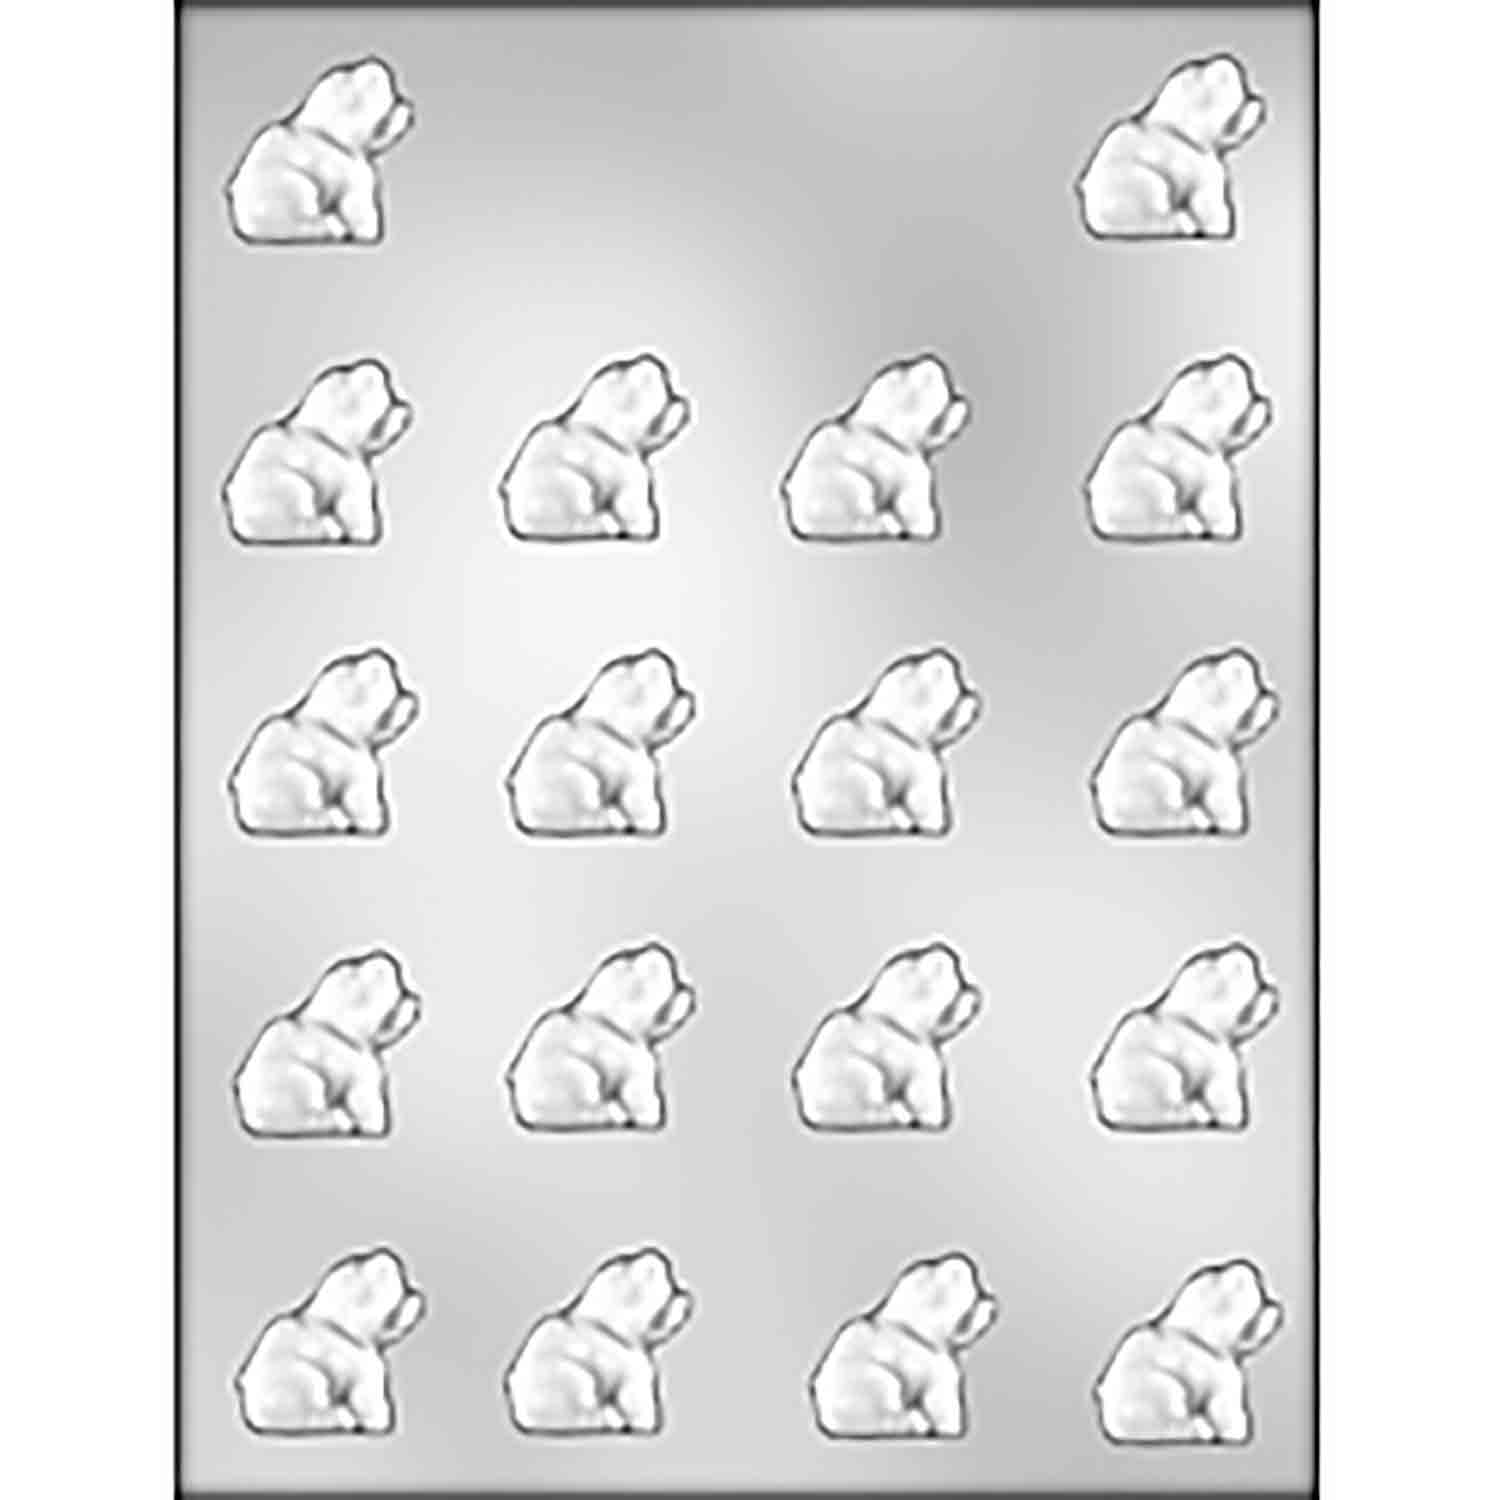 Pigs Chocolate Candy Mold